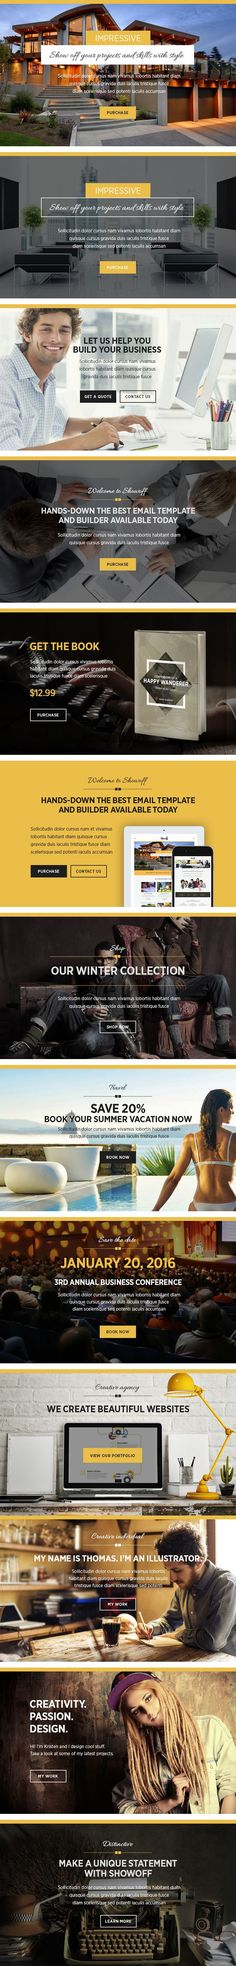 VEBU responsive #email #newsletter #template designed for general - business email template